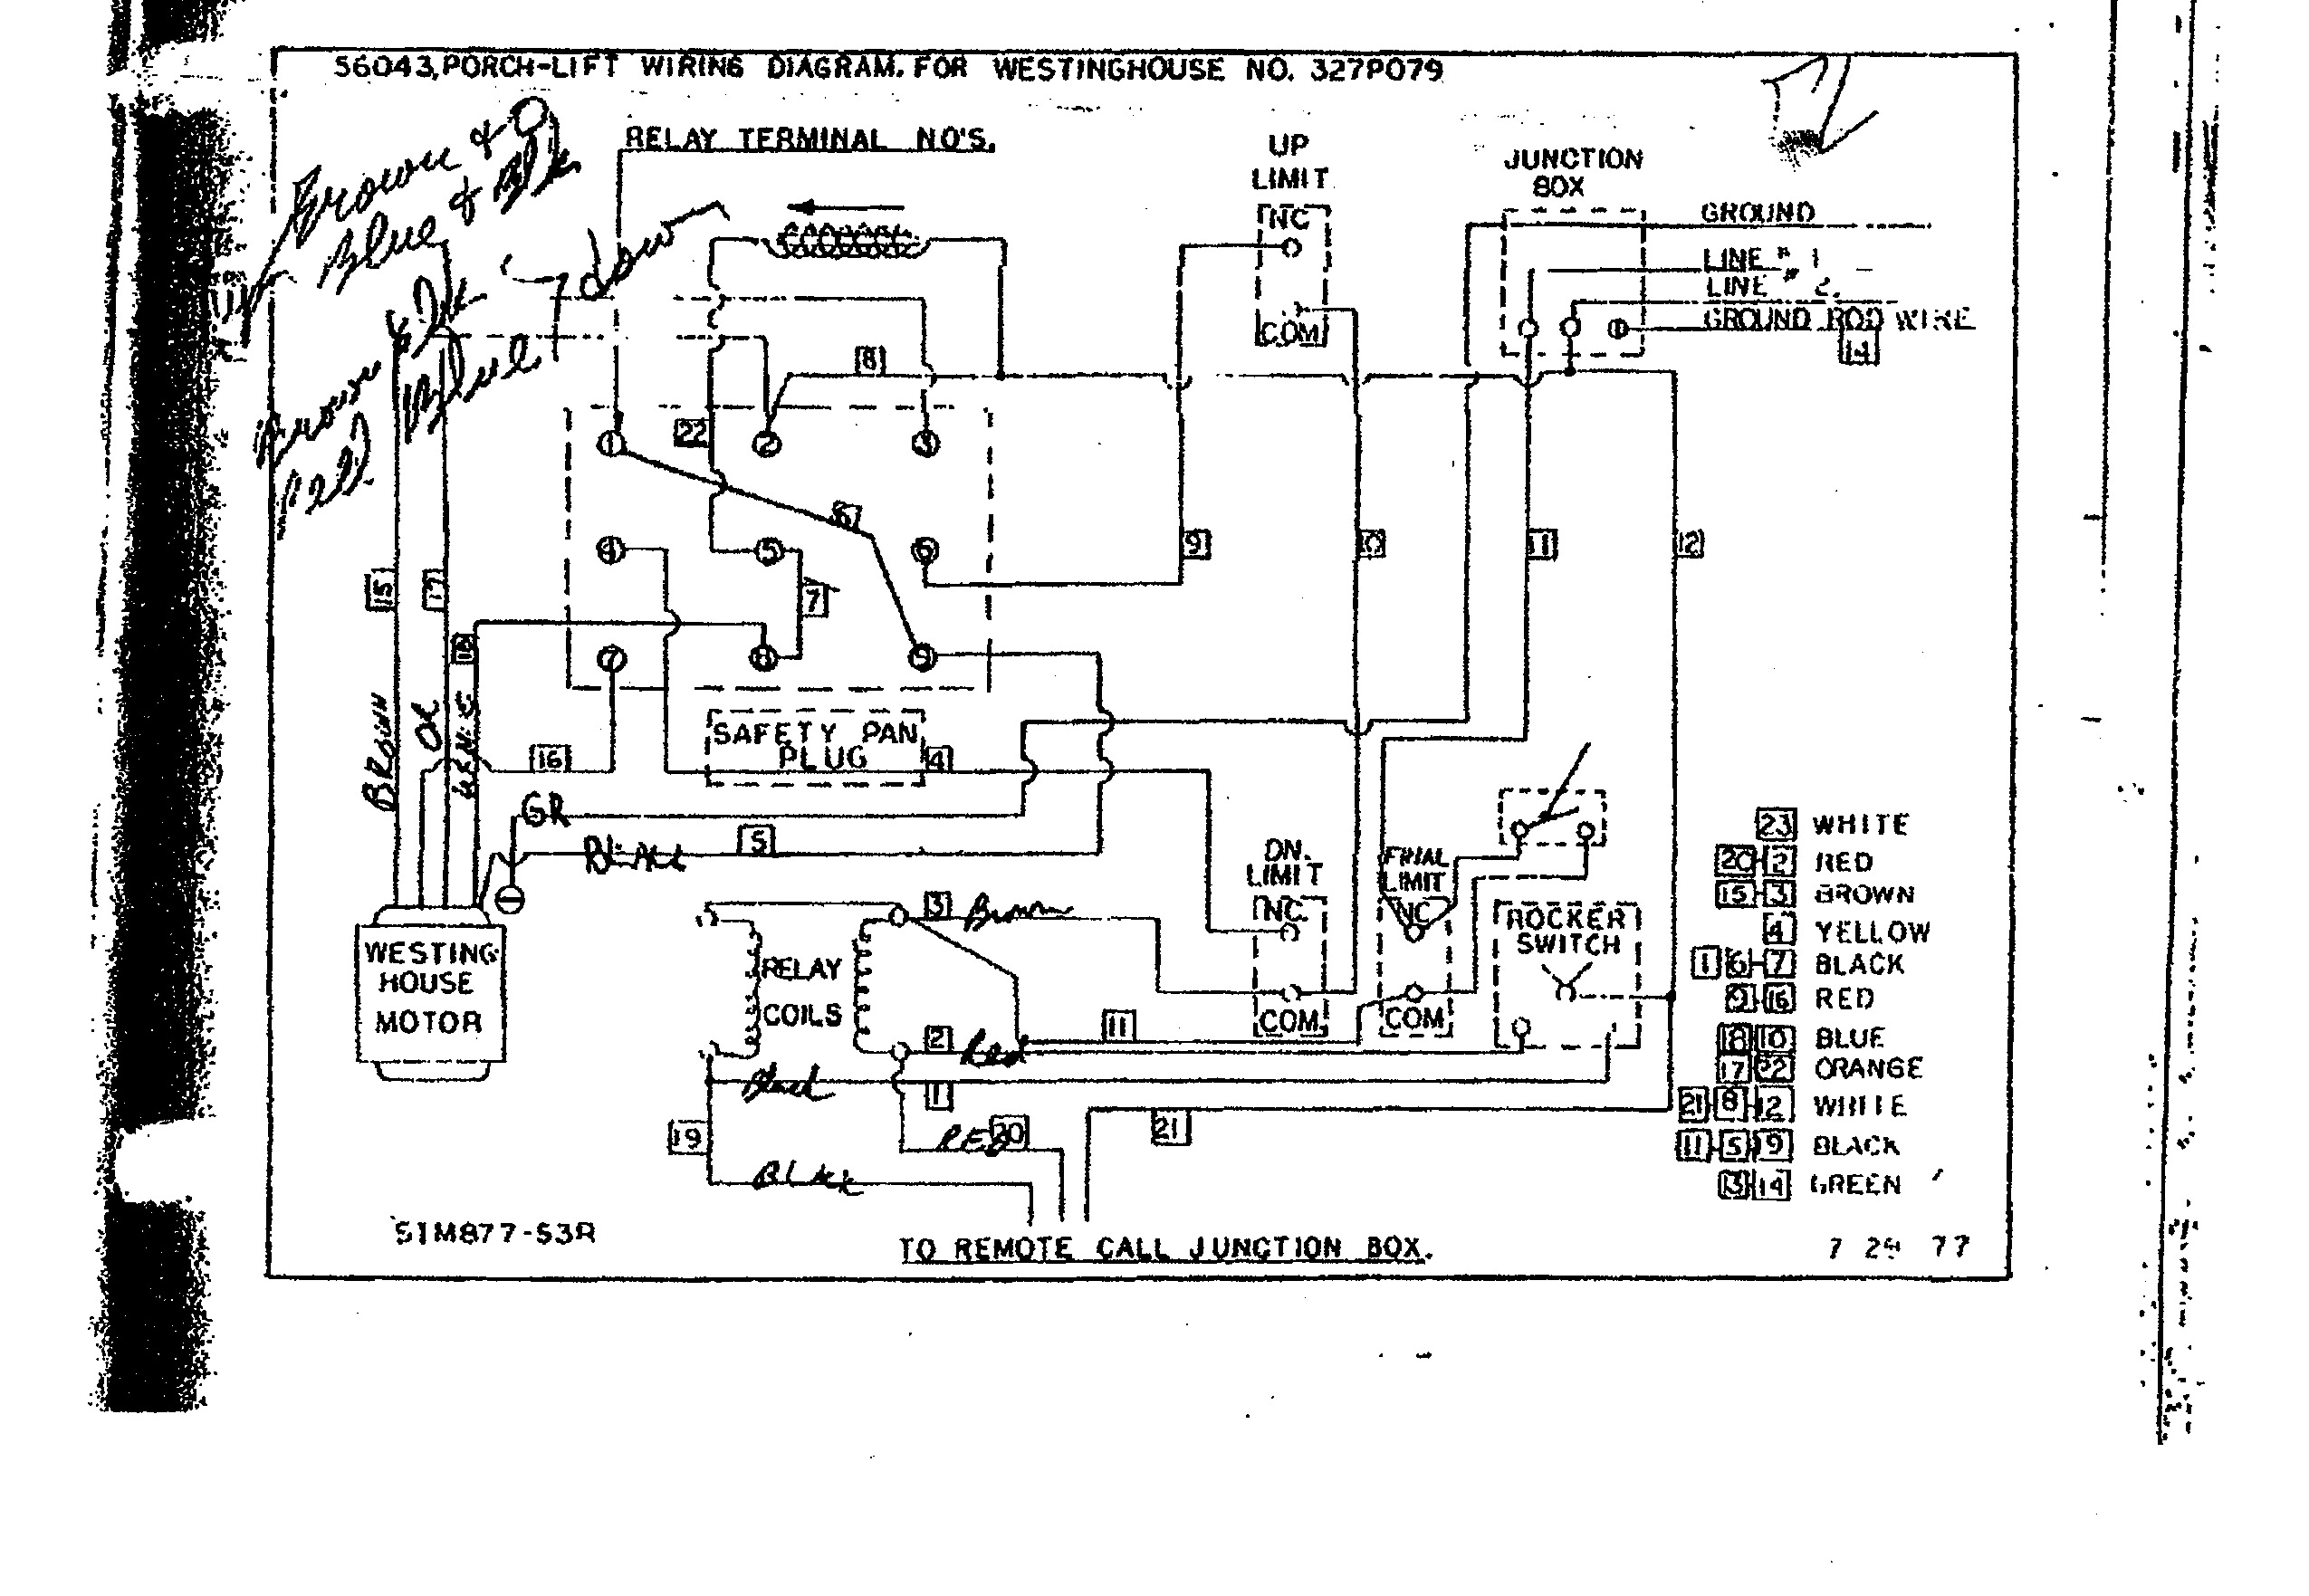 Contactor Wiring Model T Diagram Will Be A Thing Latching Who Where Can I Get Help With Westinghouse Motor Electrical